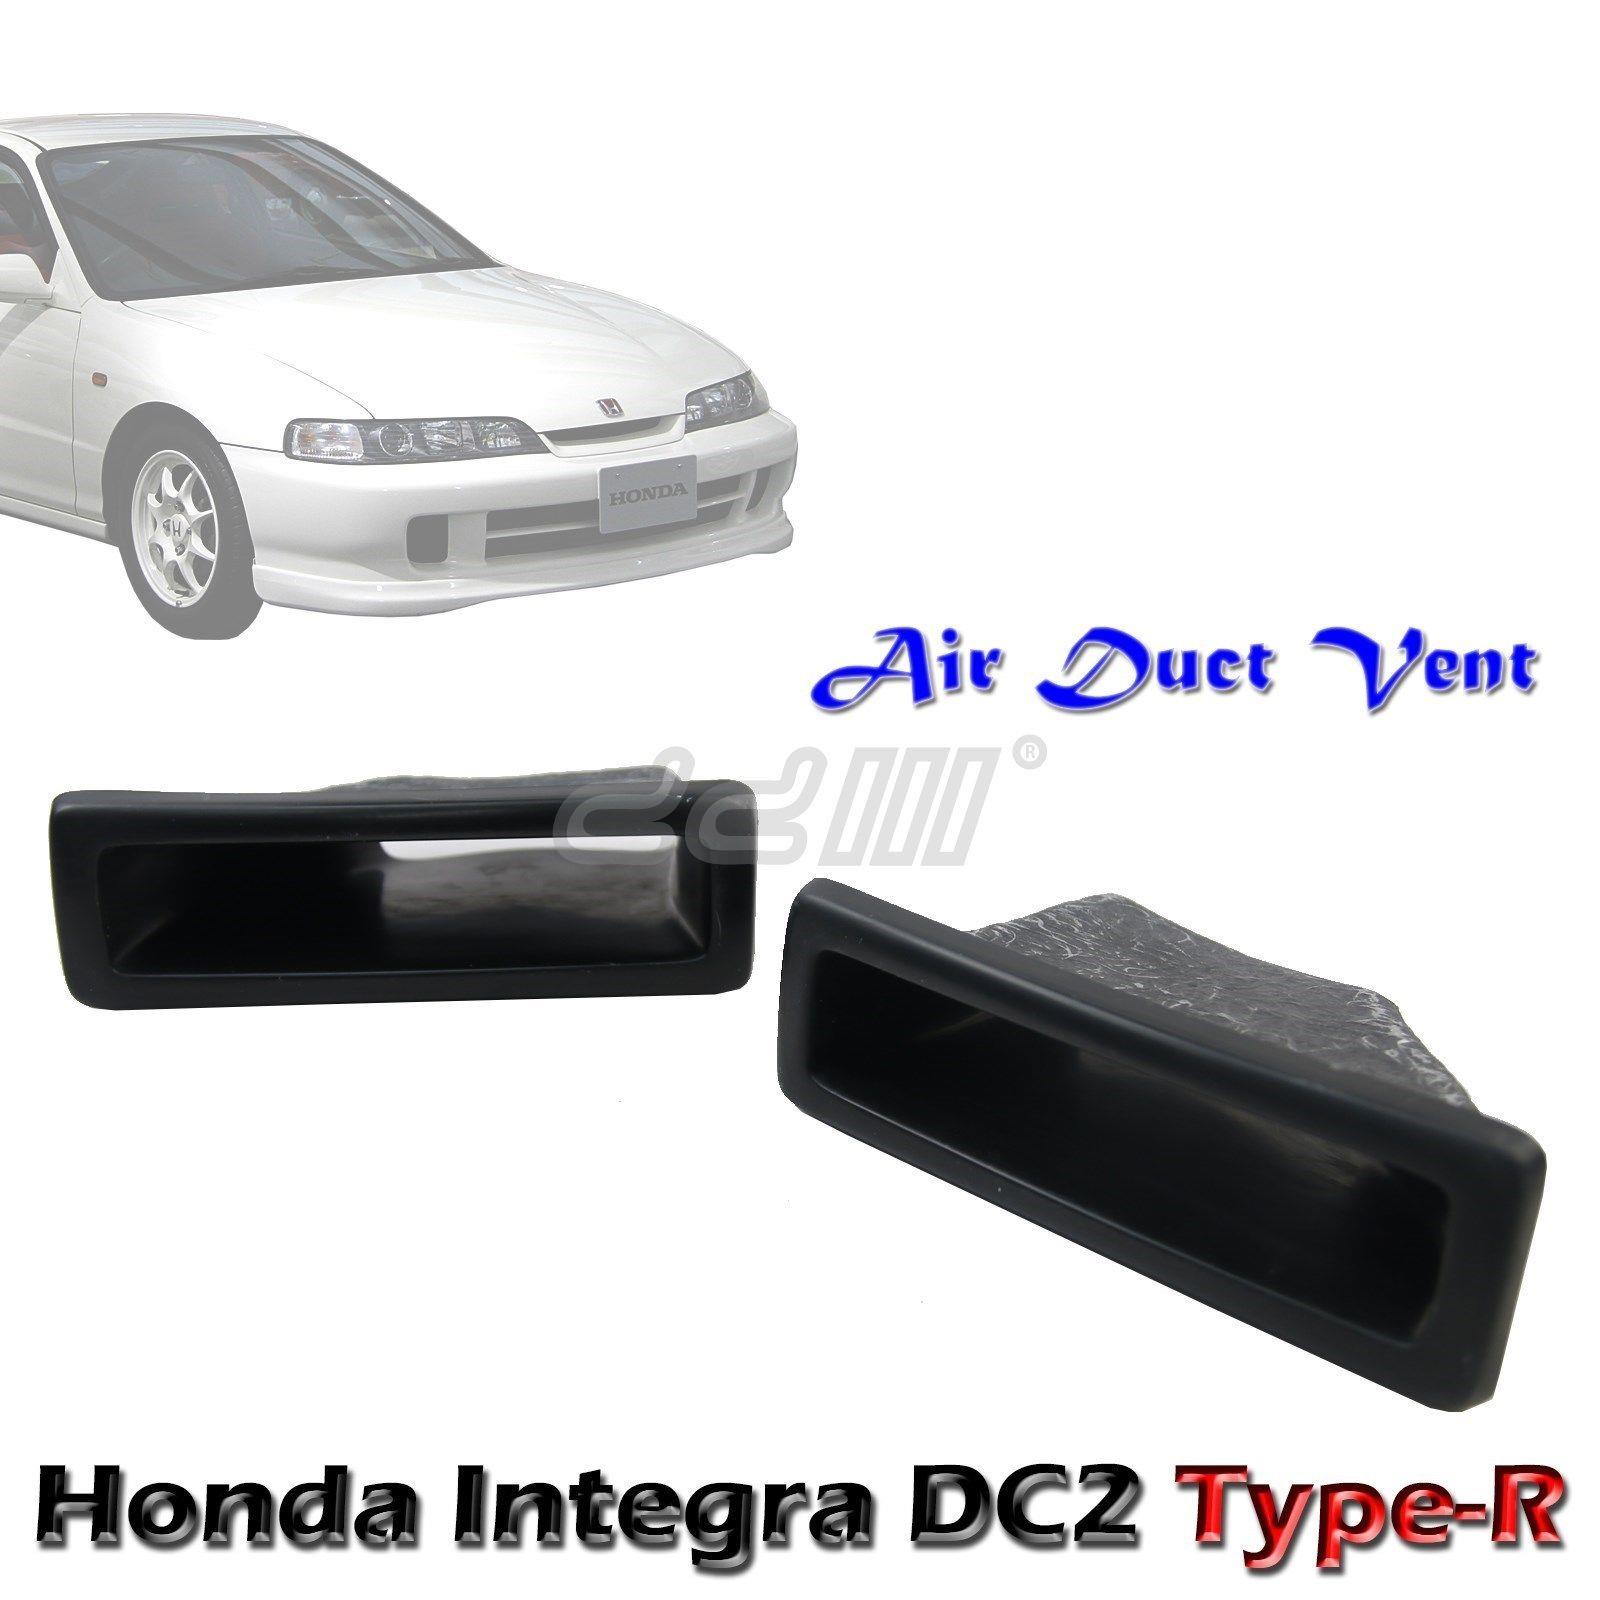 honda acura integra dc2 type r 1997 2001 frp front cooling. Black Bedroom Furniture Sets. Home Design Ideas